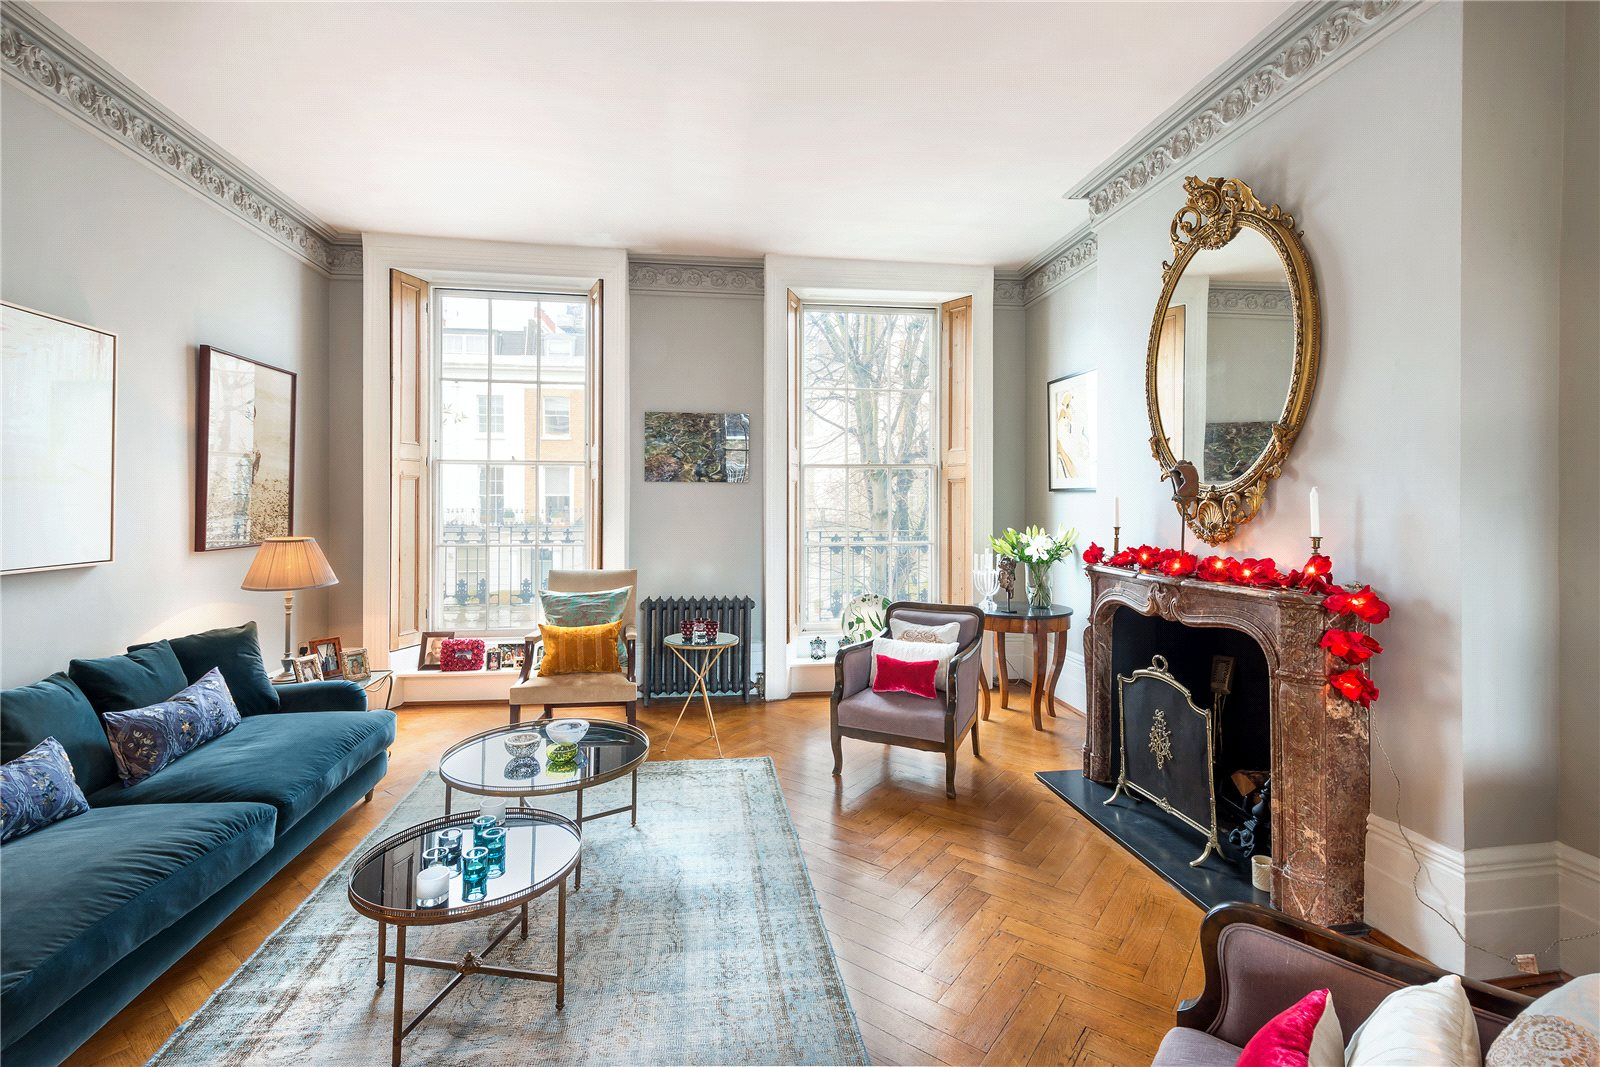 Single Family Home for Sale at Drayton Gardens, Chelsea, London, SW10 Chelsea, London, England